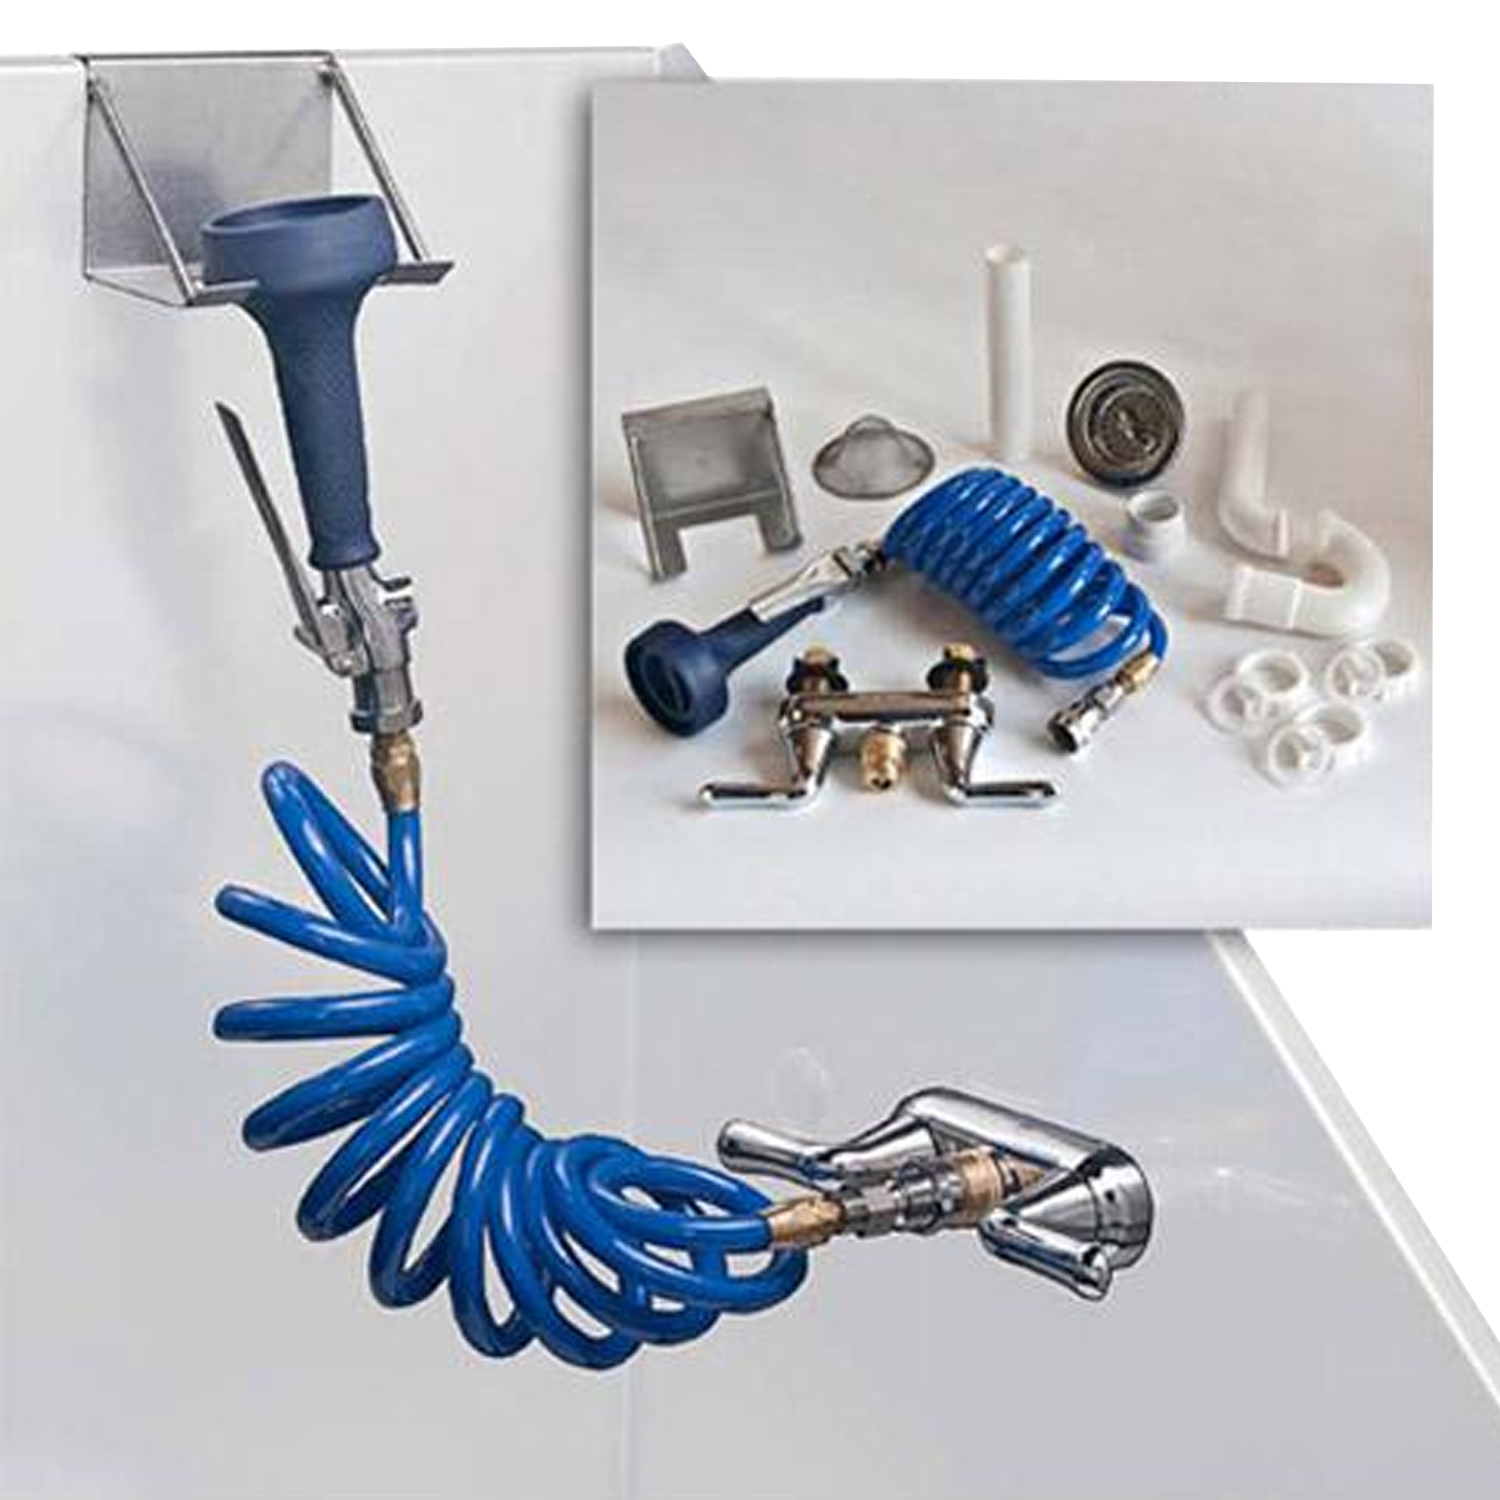 Complete Plumbing Kit for Bathing Tubs